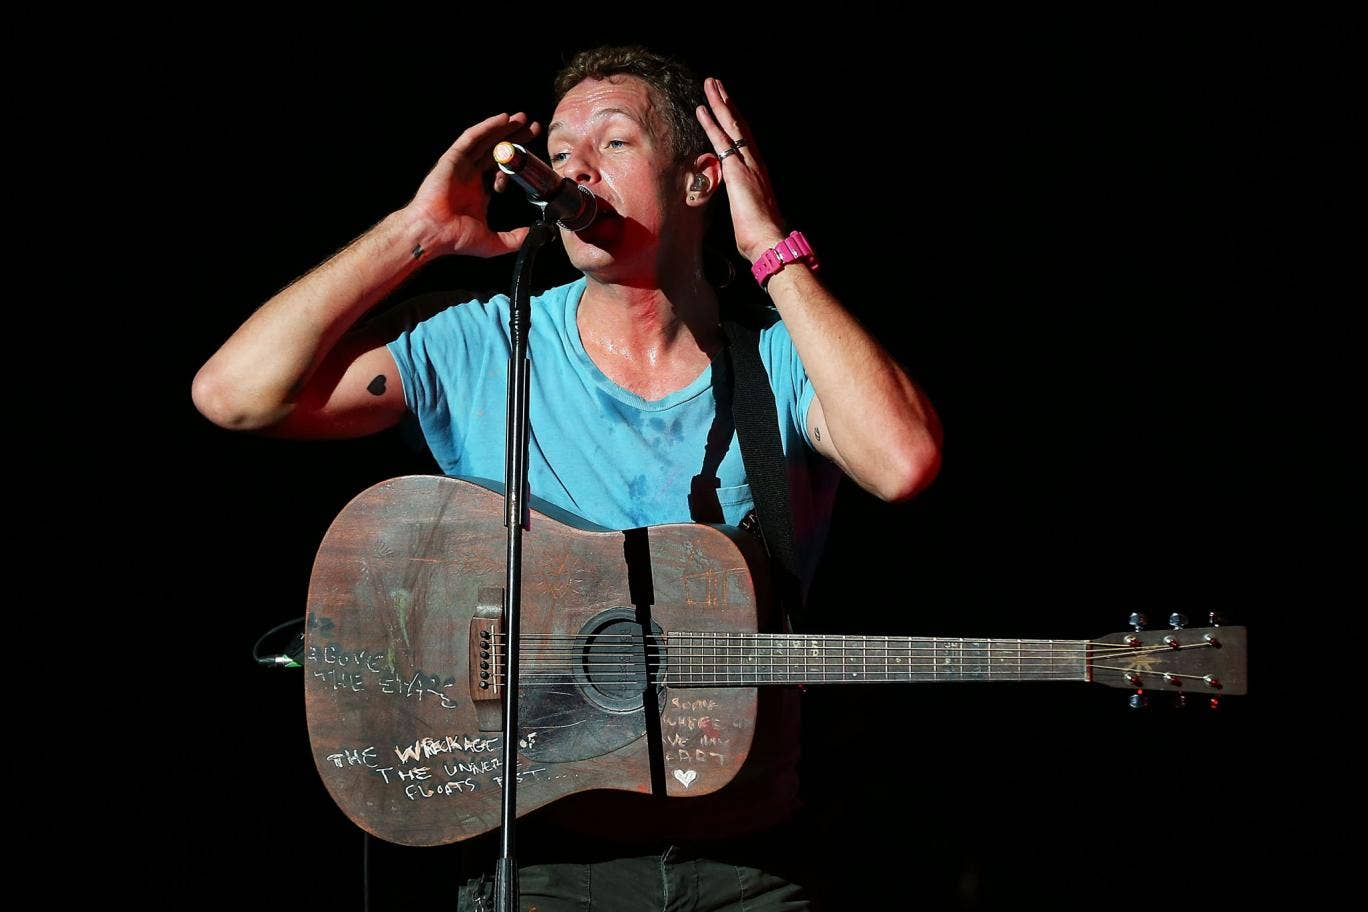 Coldplay's Chris Martin suffers from tinnitus